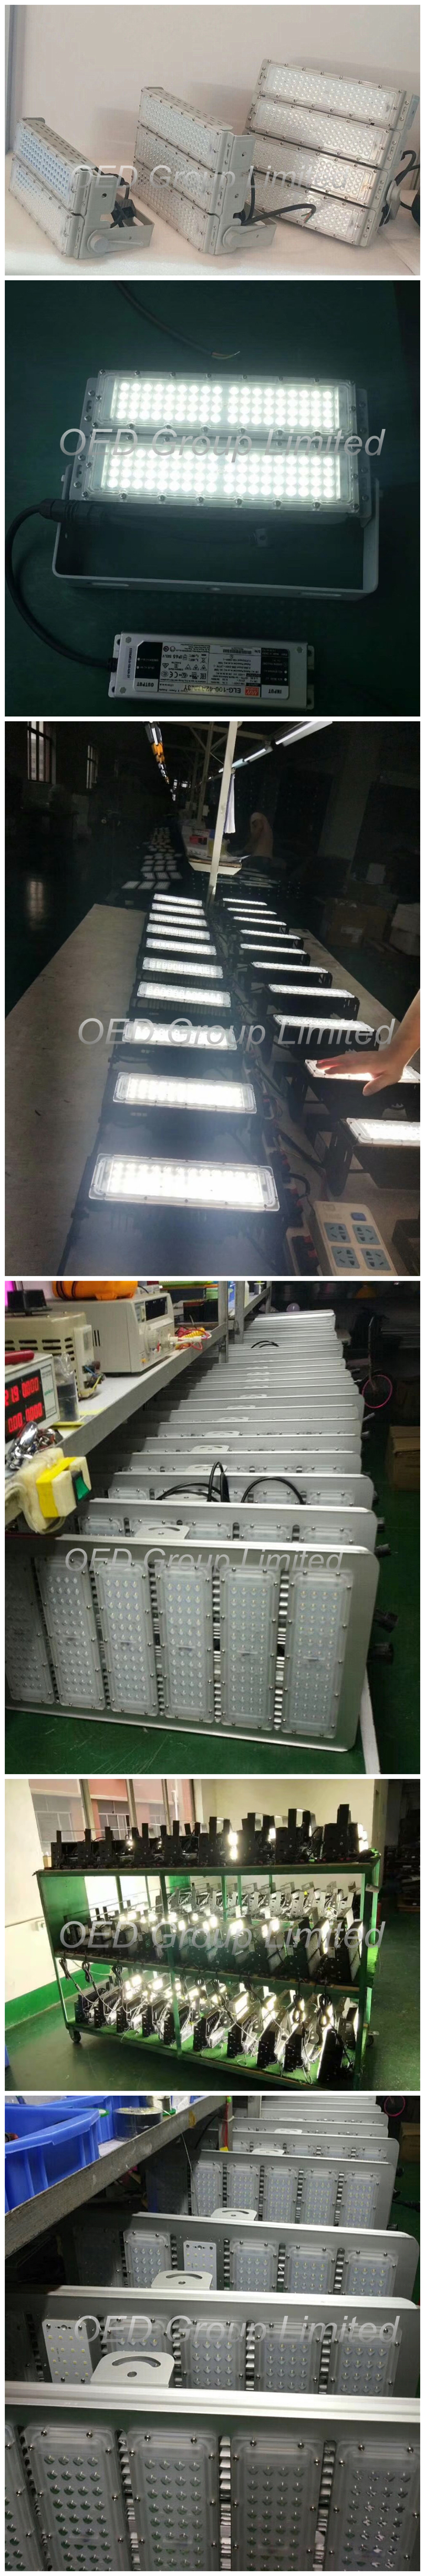 led module floodlight.jpg